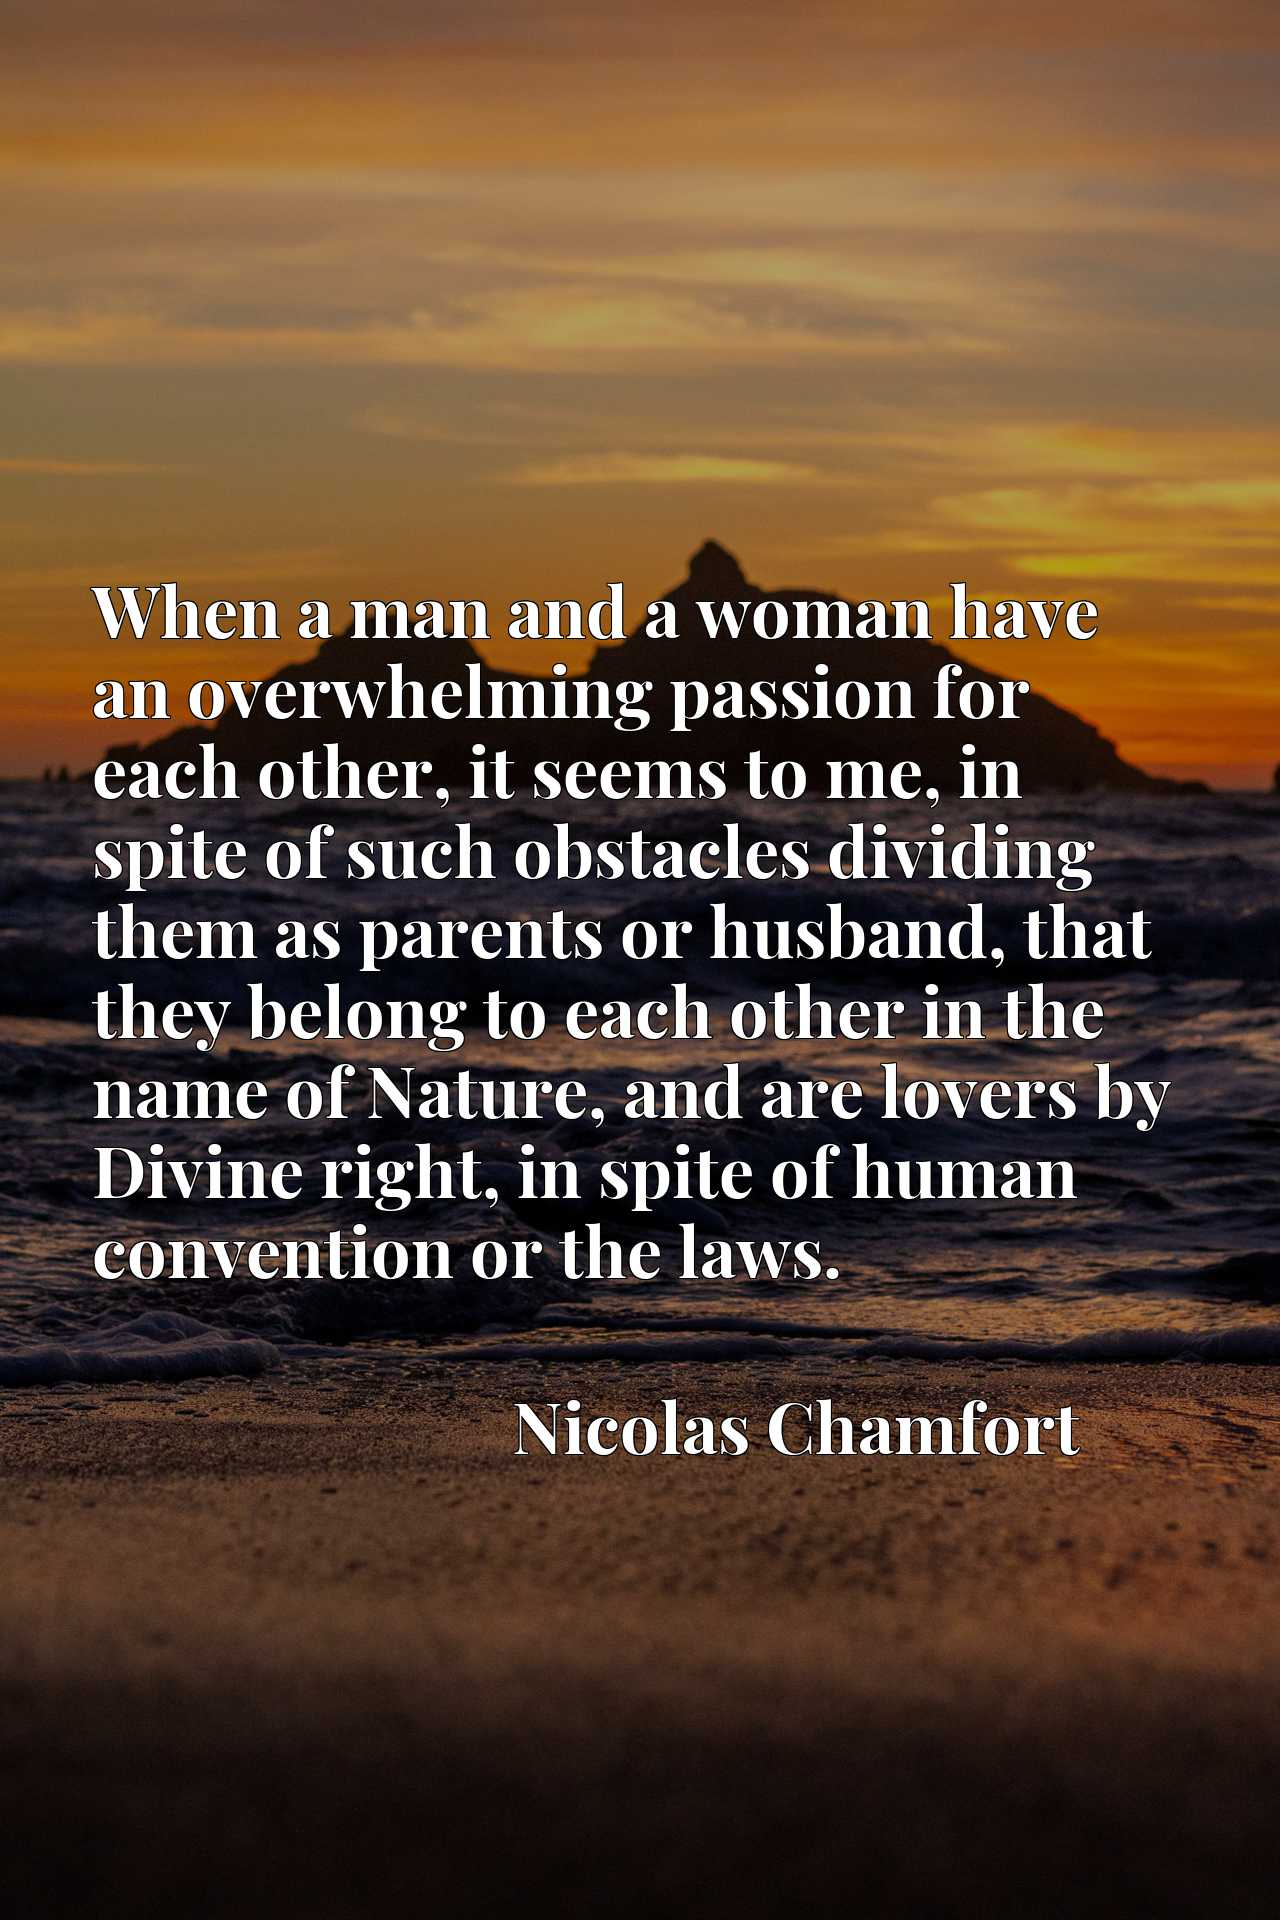 Quote Picture :When a man and a woman have an overwhelming passion for each other, it seems to me, in spite of such obstacles dividing them as parents or husband, that they belong to each other in the name of Nature, and are lovers by Divine right, in spite of human convention or the laws.